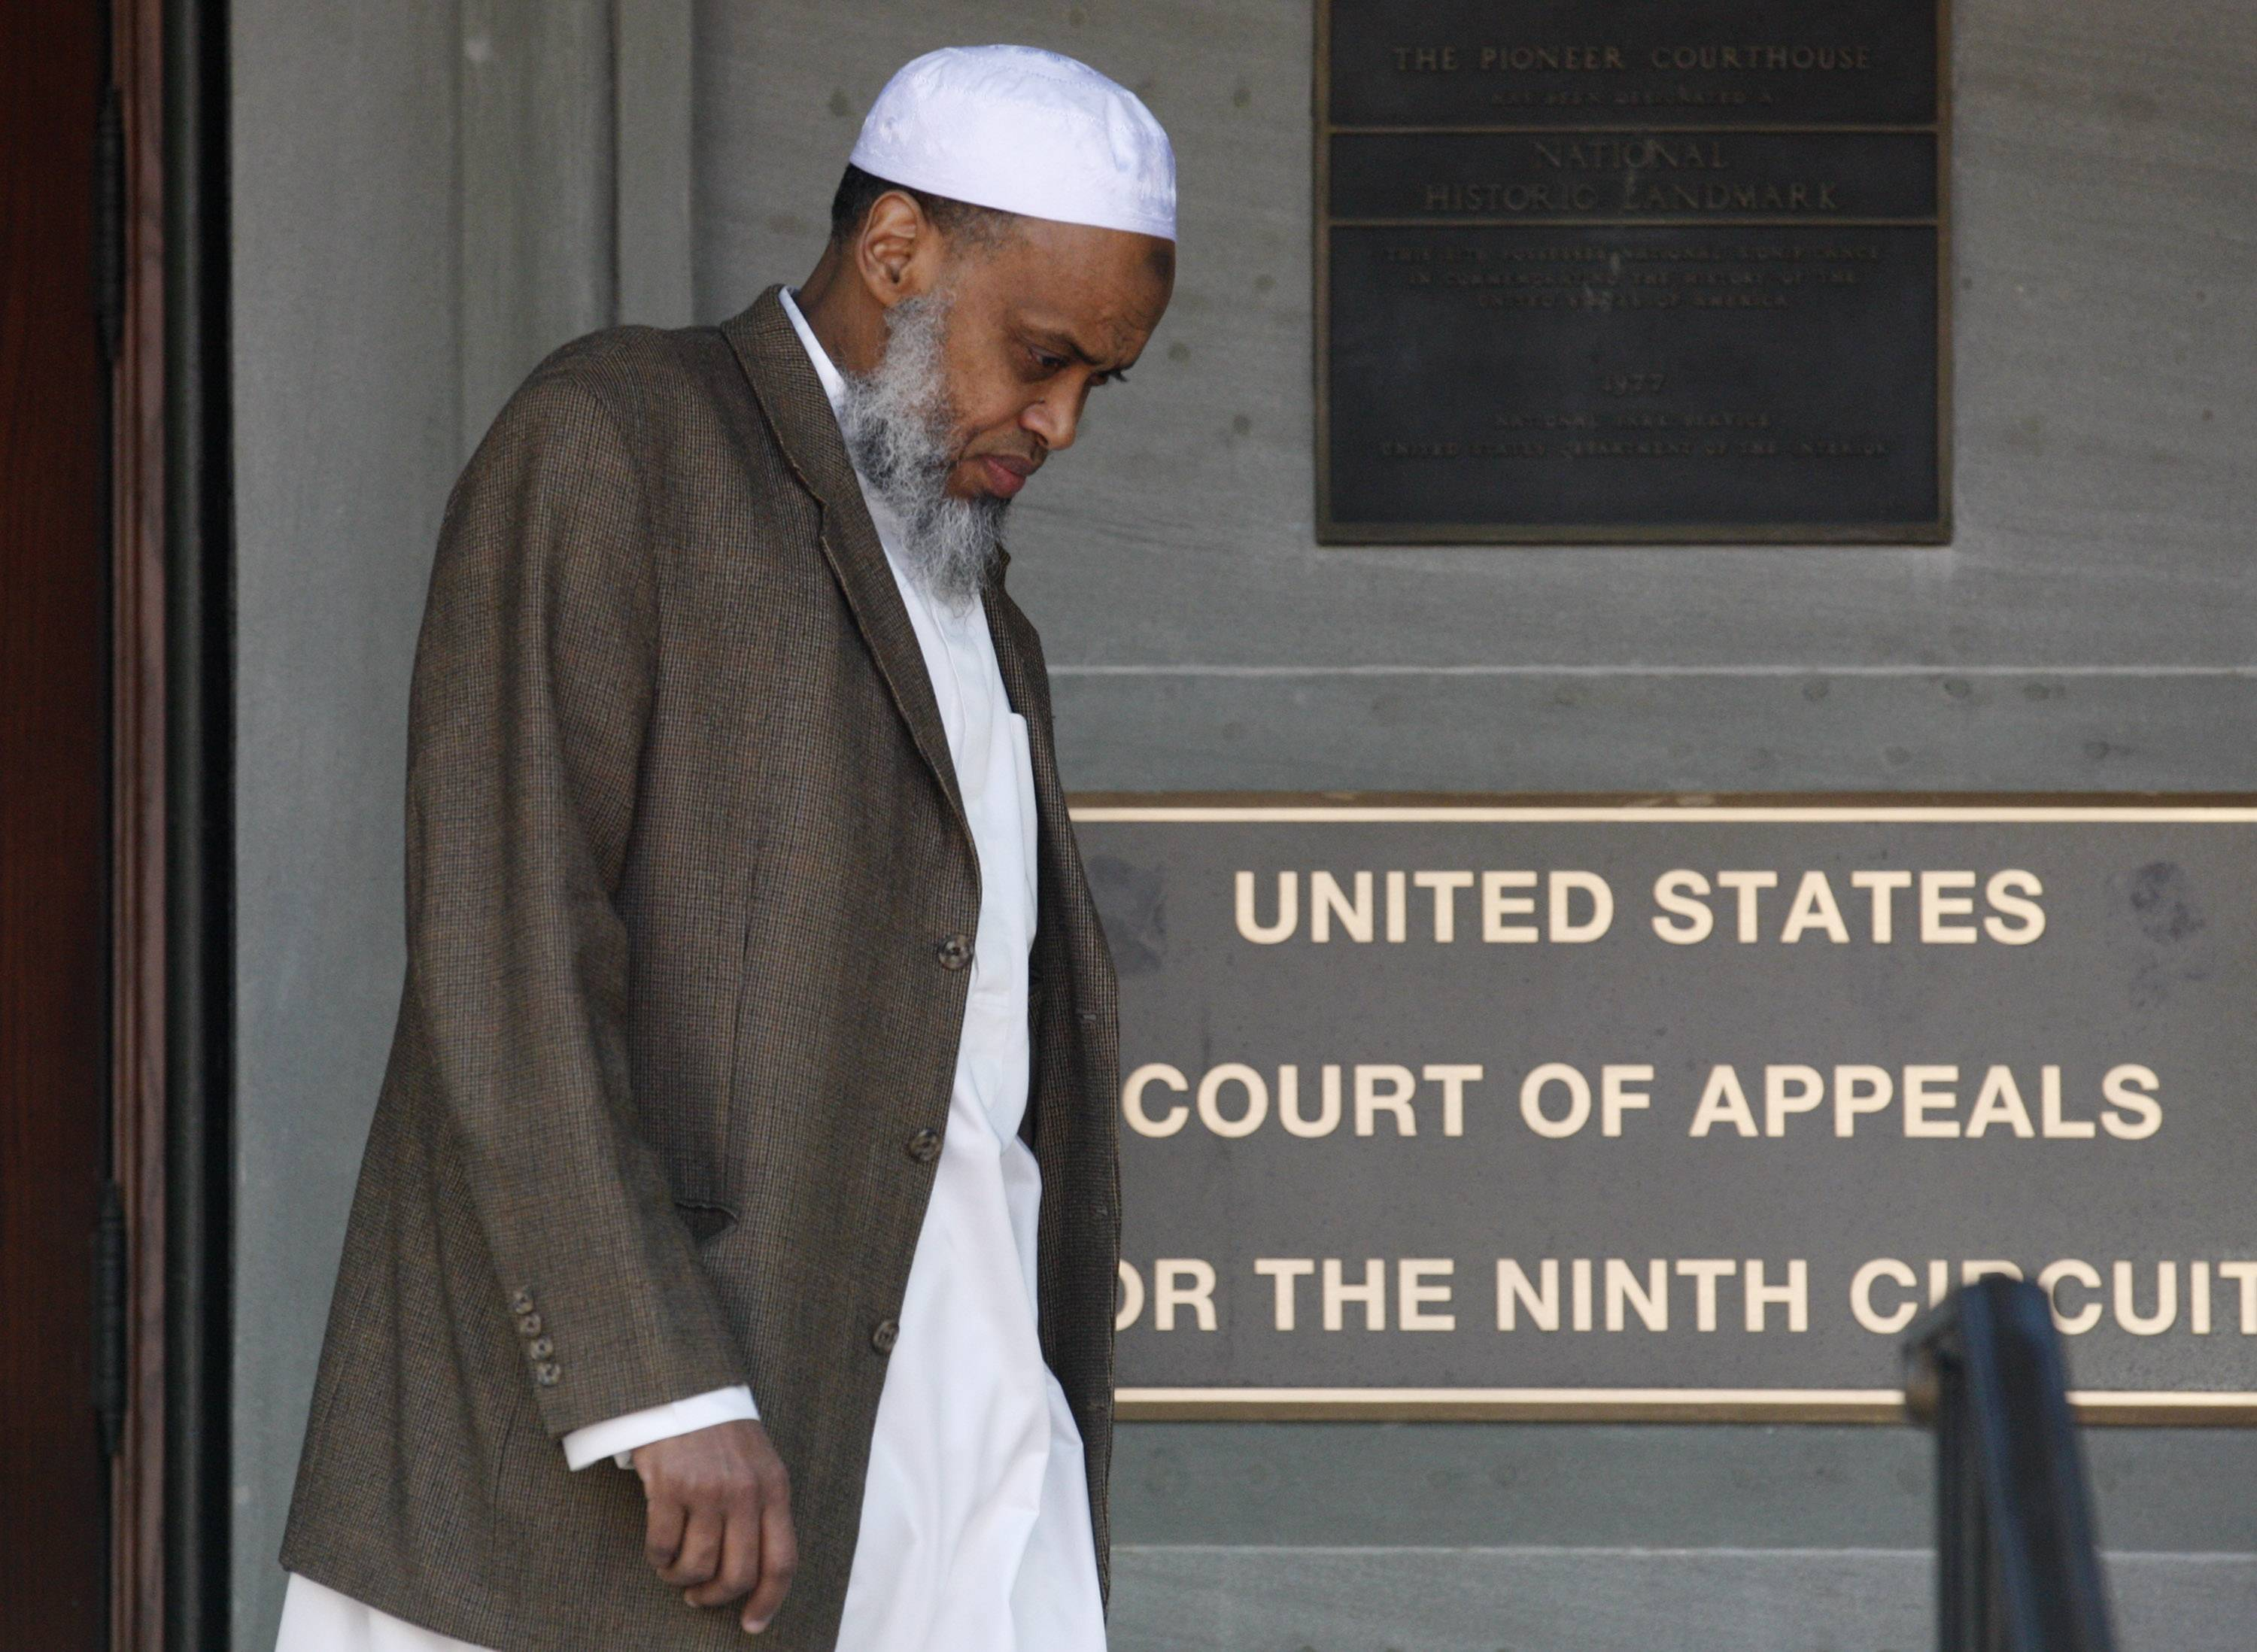 Portland Imam Mohamed Sheikh Abdirahman Kariye is one of 15 men who say their rights were violated because they are on the U.S. government's no-fly list.